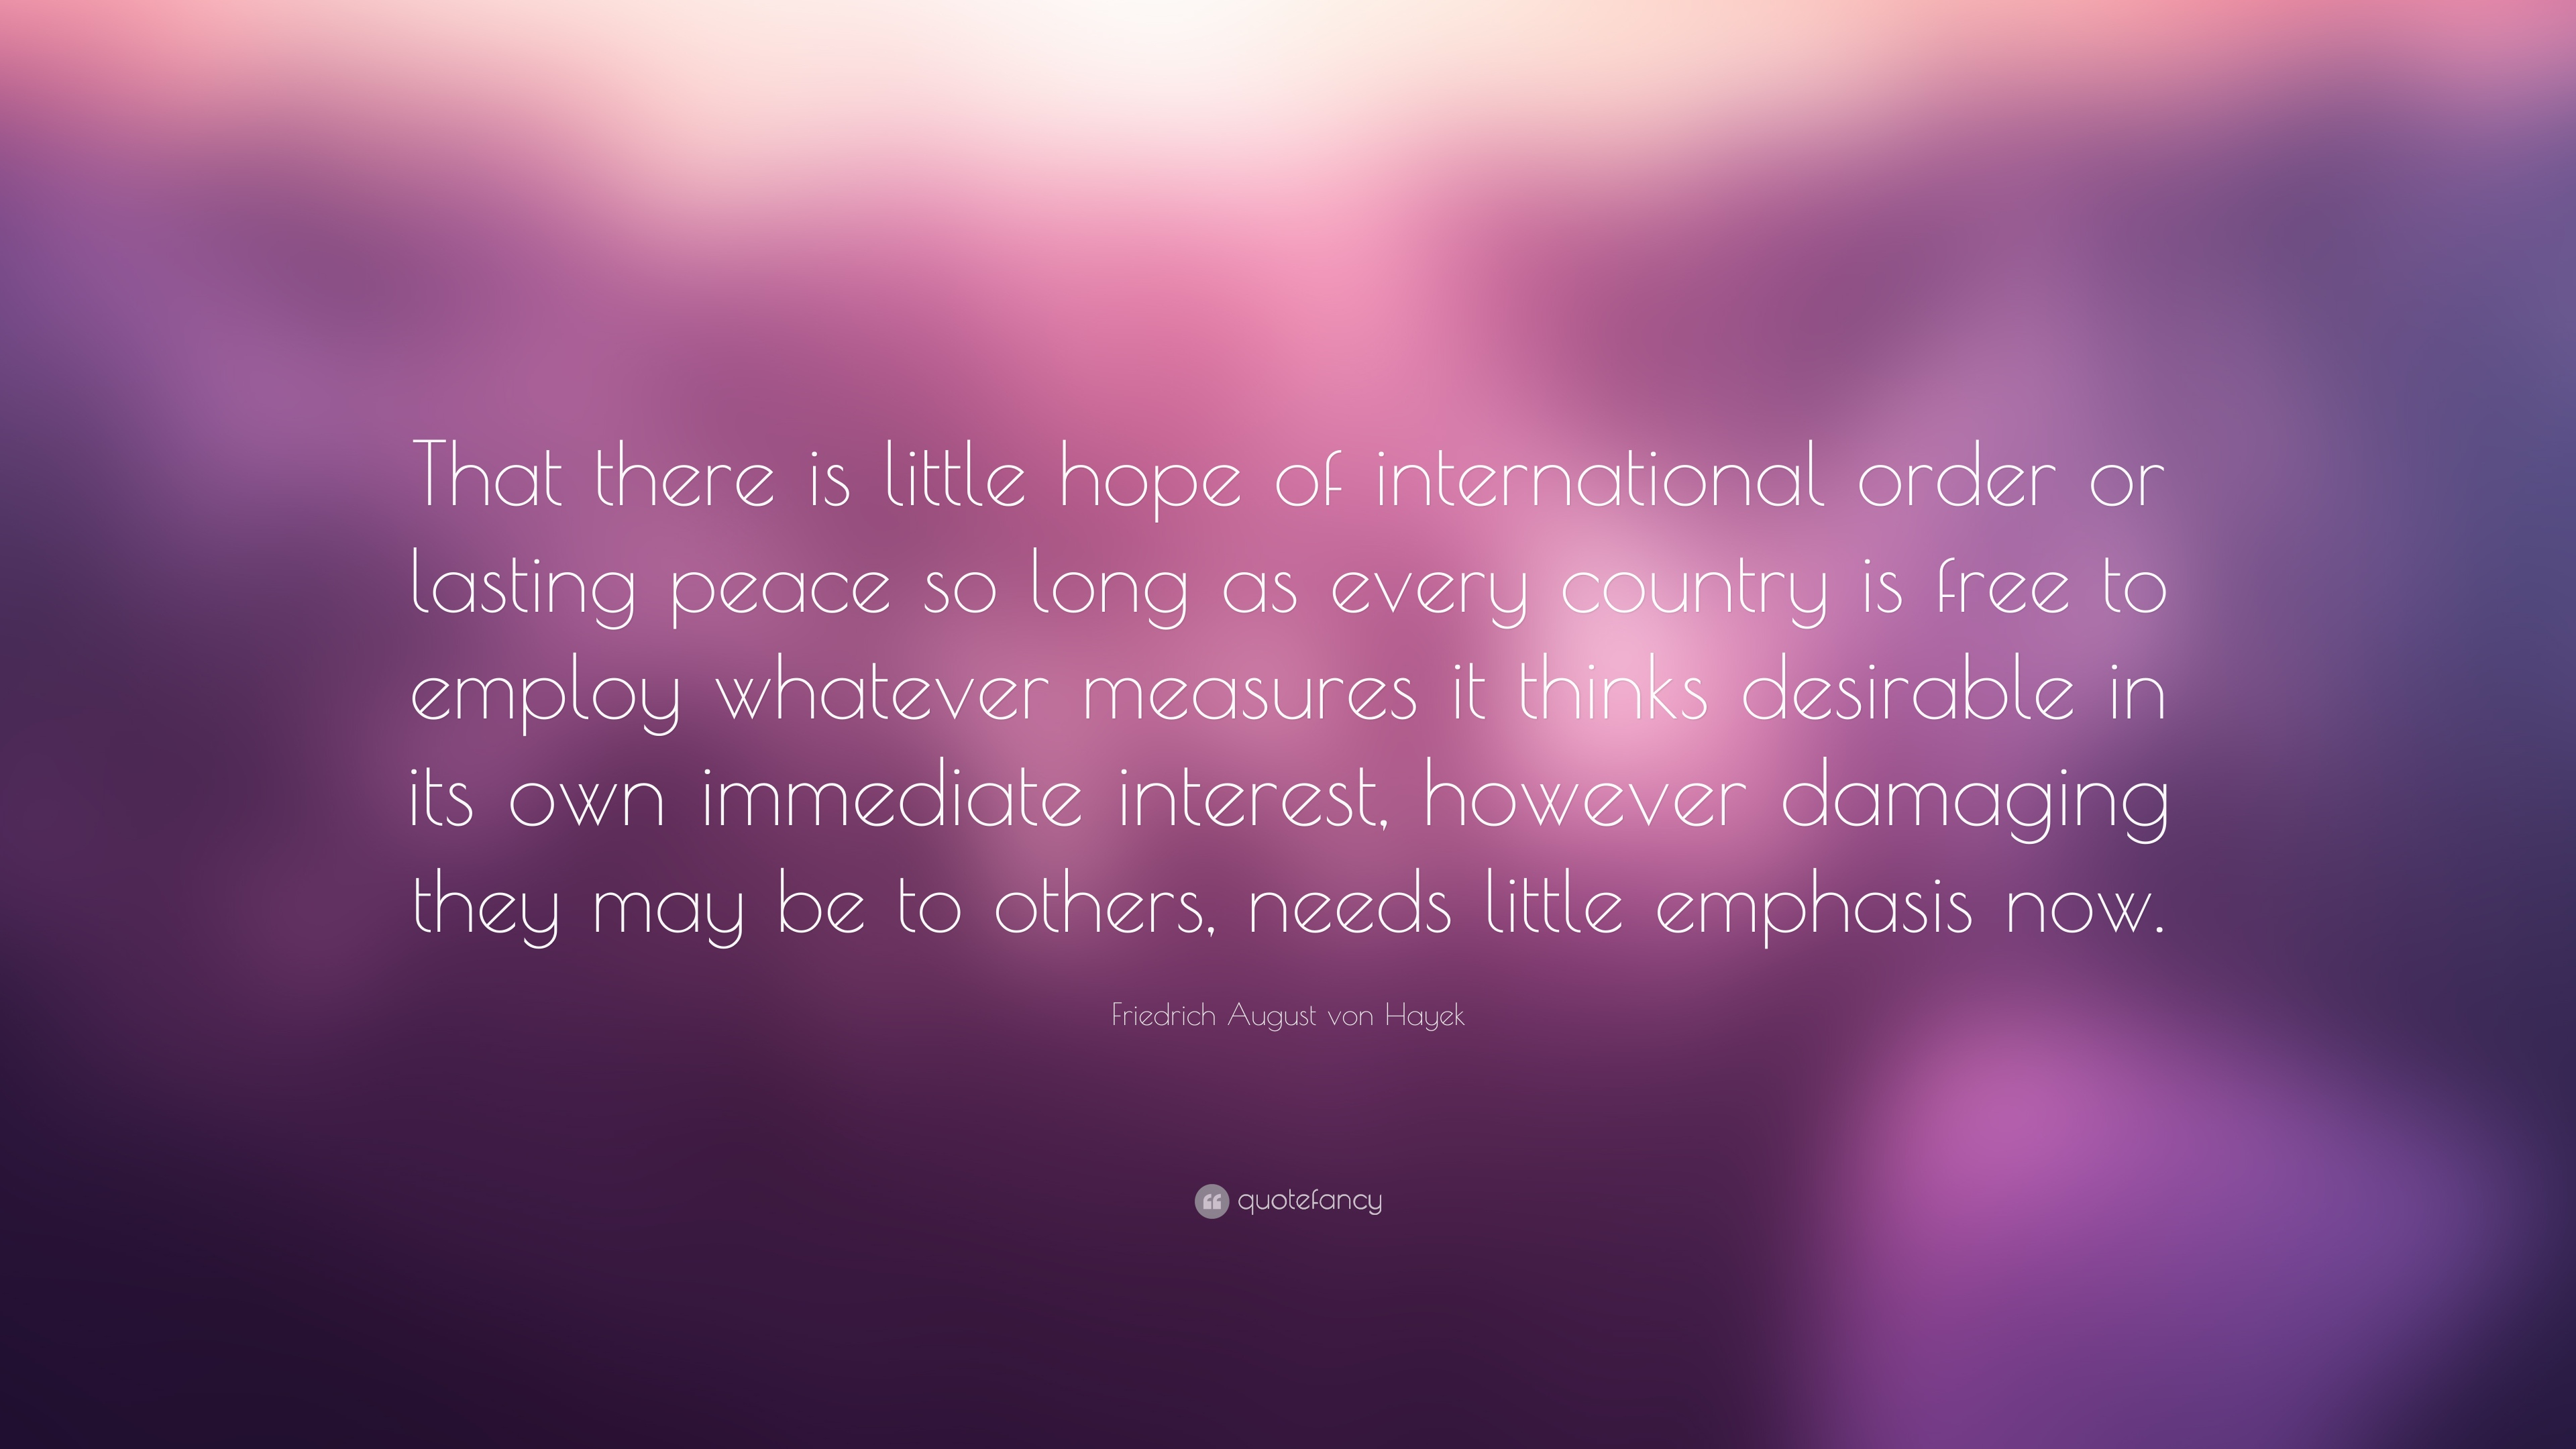 High Quality Friedrich August Von Hayek Quote: U201cThat There Is Little Hope Of  International Order Or